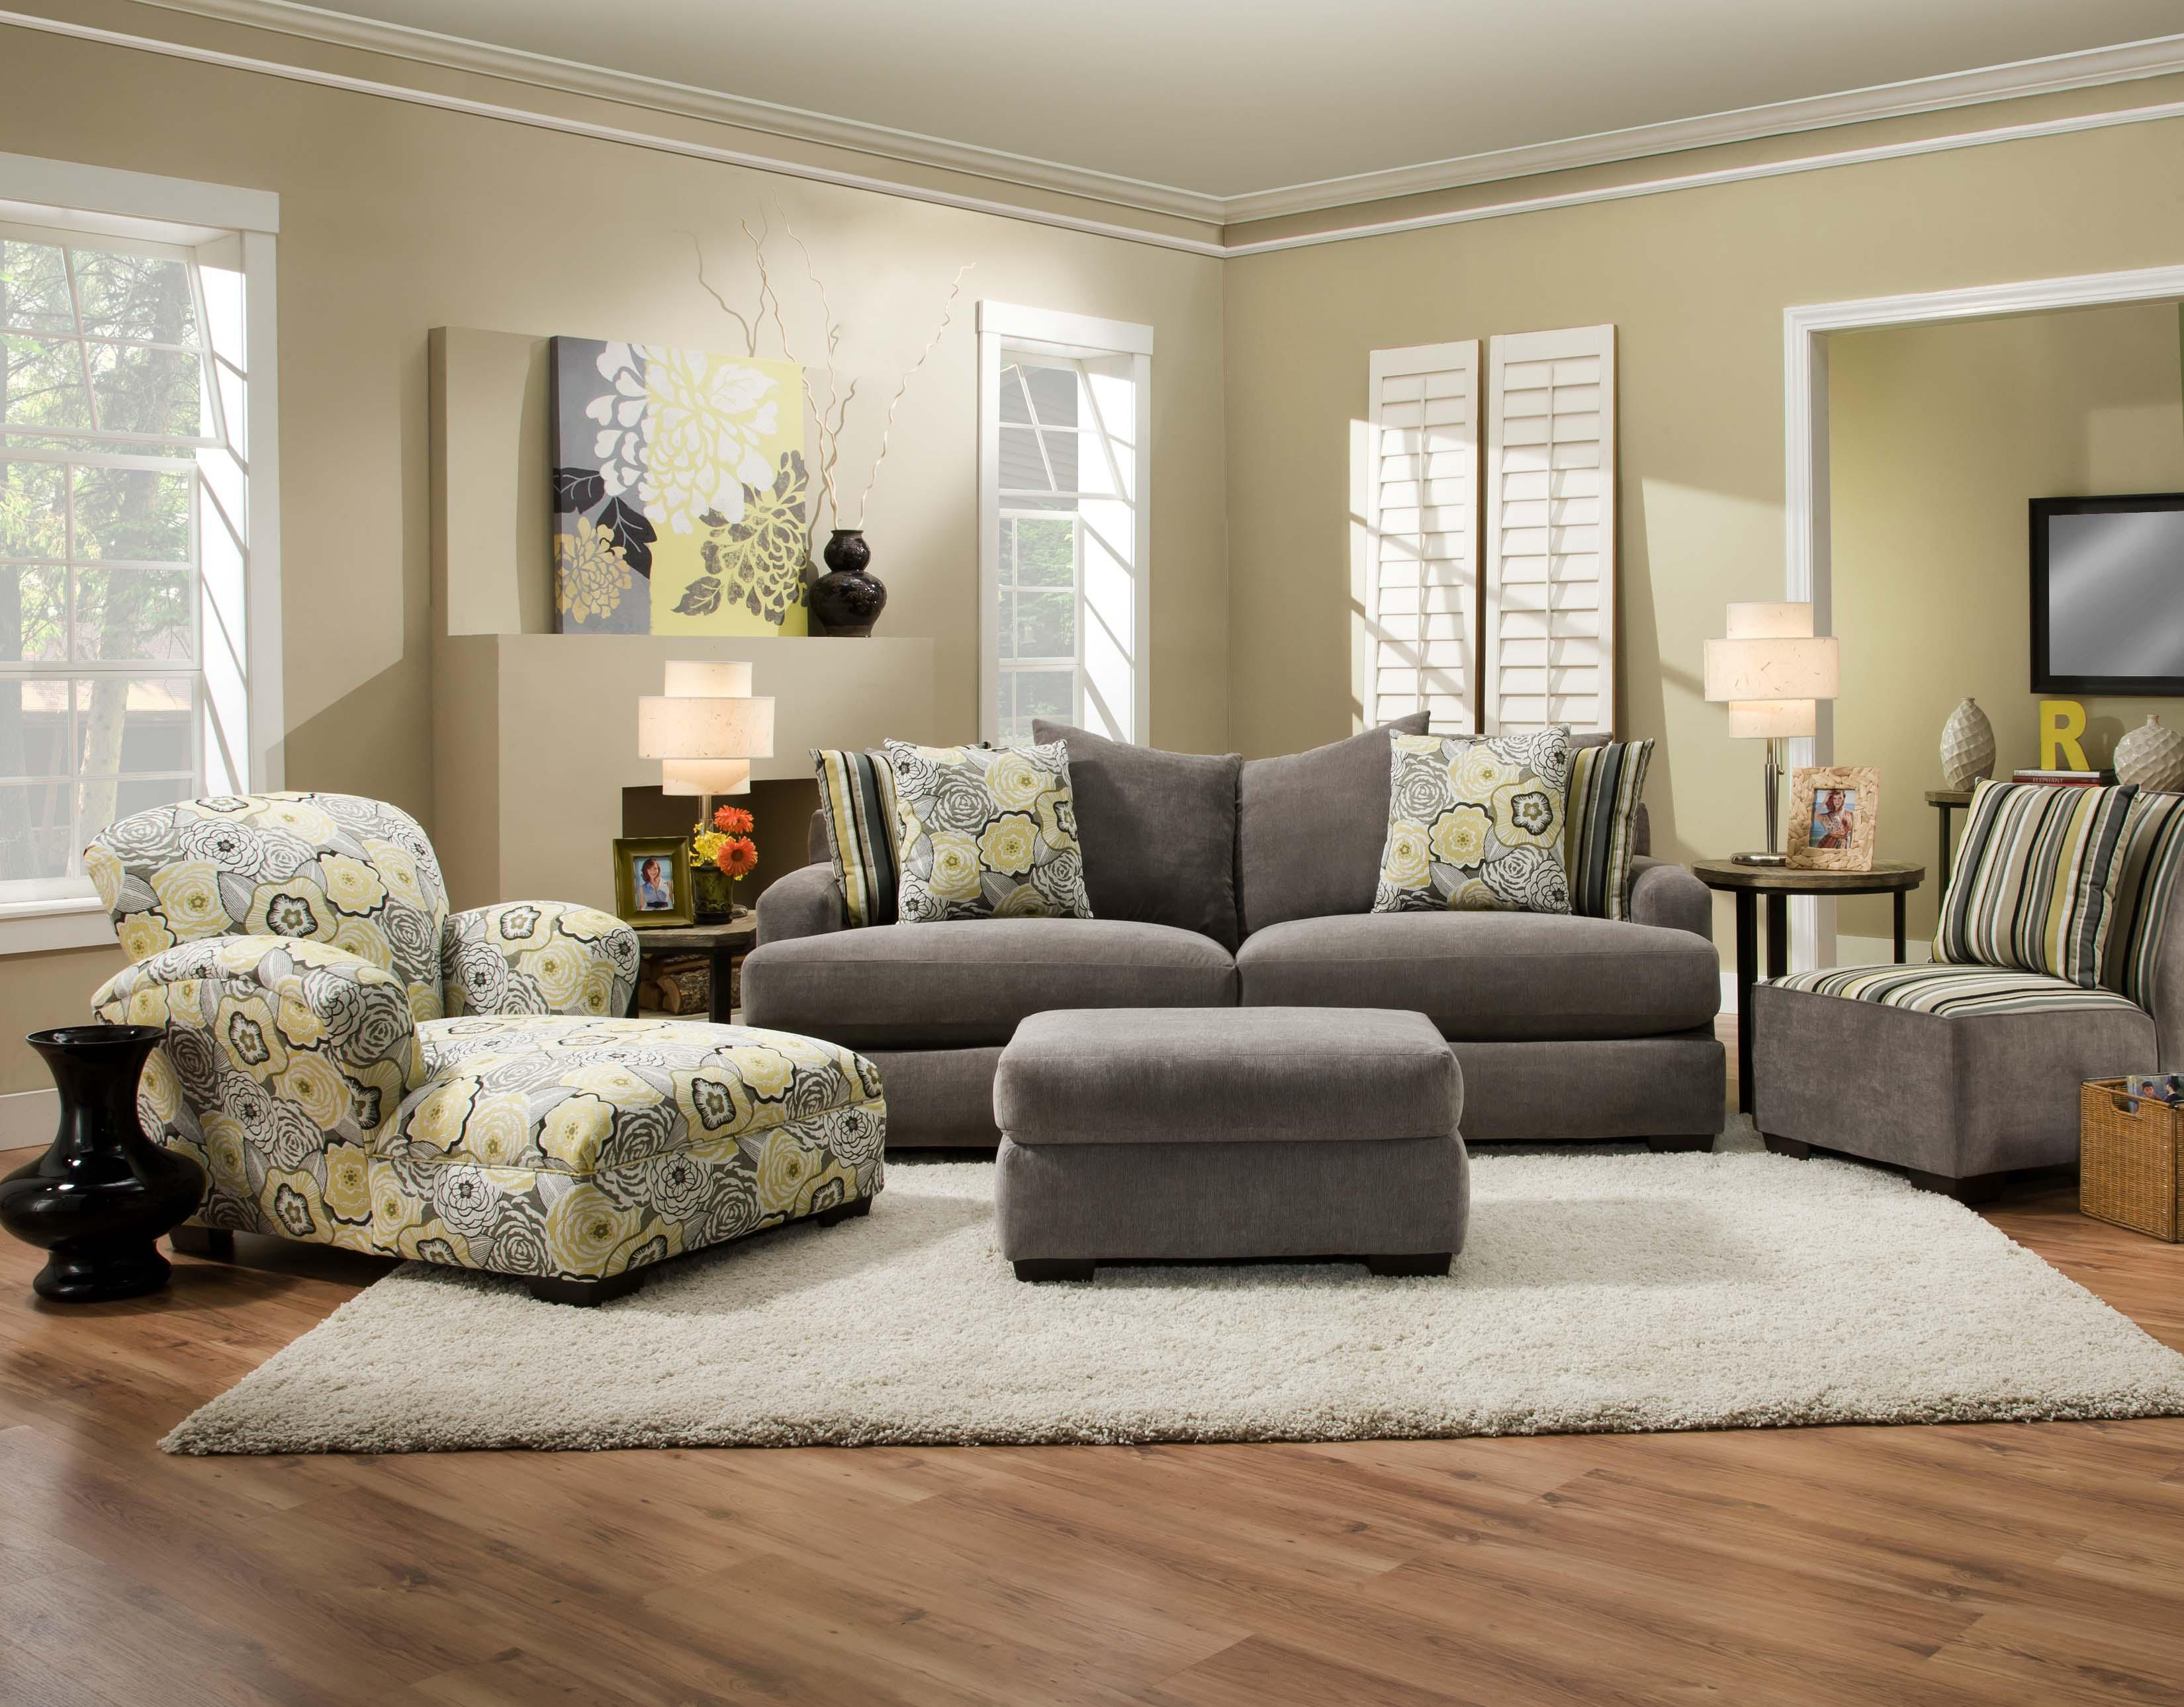 Home Furniture Baton Rouge At Home Furniture At Home Furniture Store Furniture At Home With